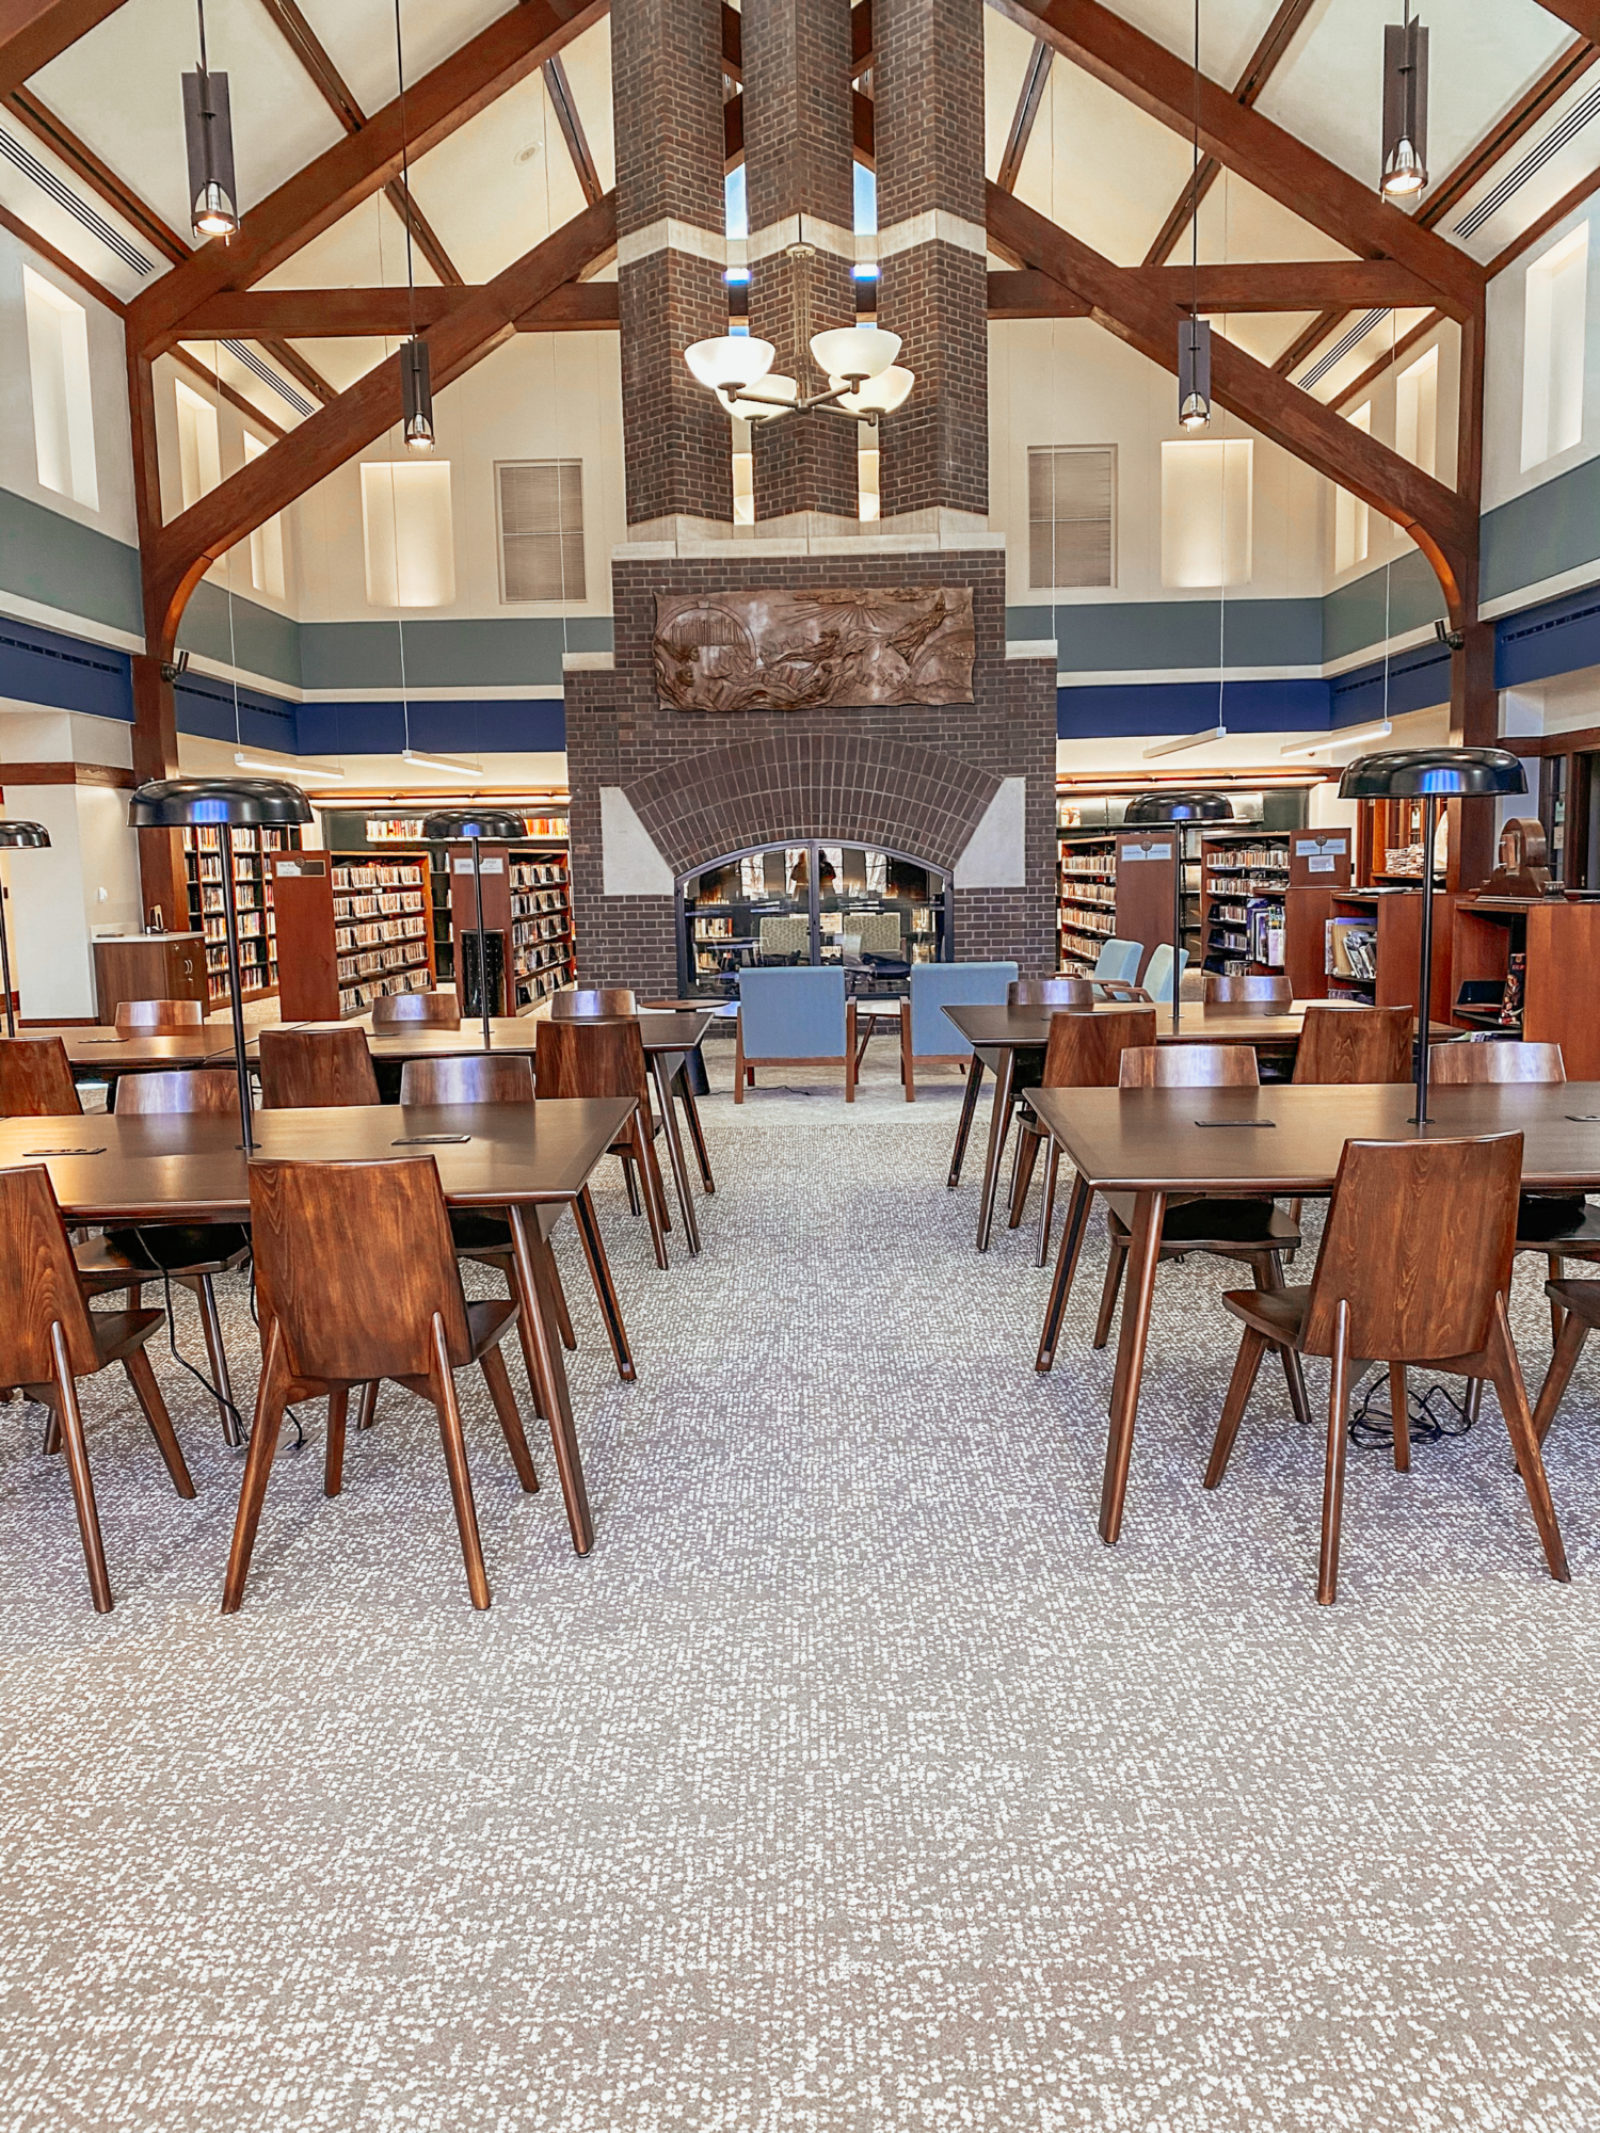 An image of the center of the library with a view of the study tables and chairs and the central lounge area with blue chairs and wood coffee tables.